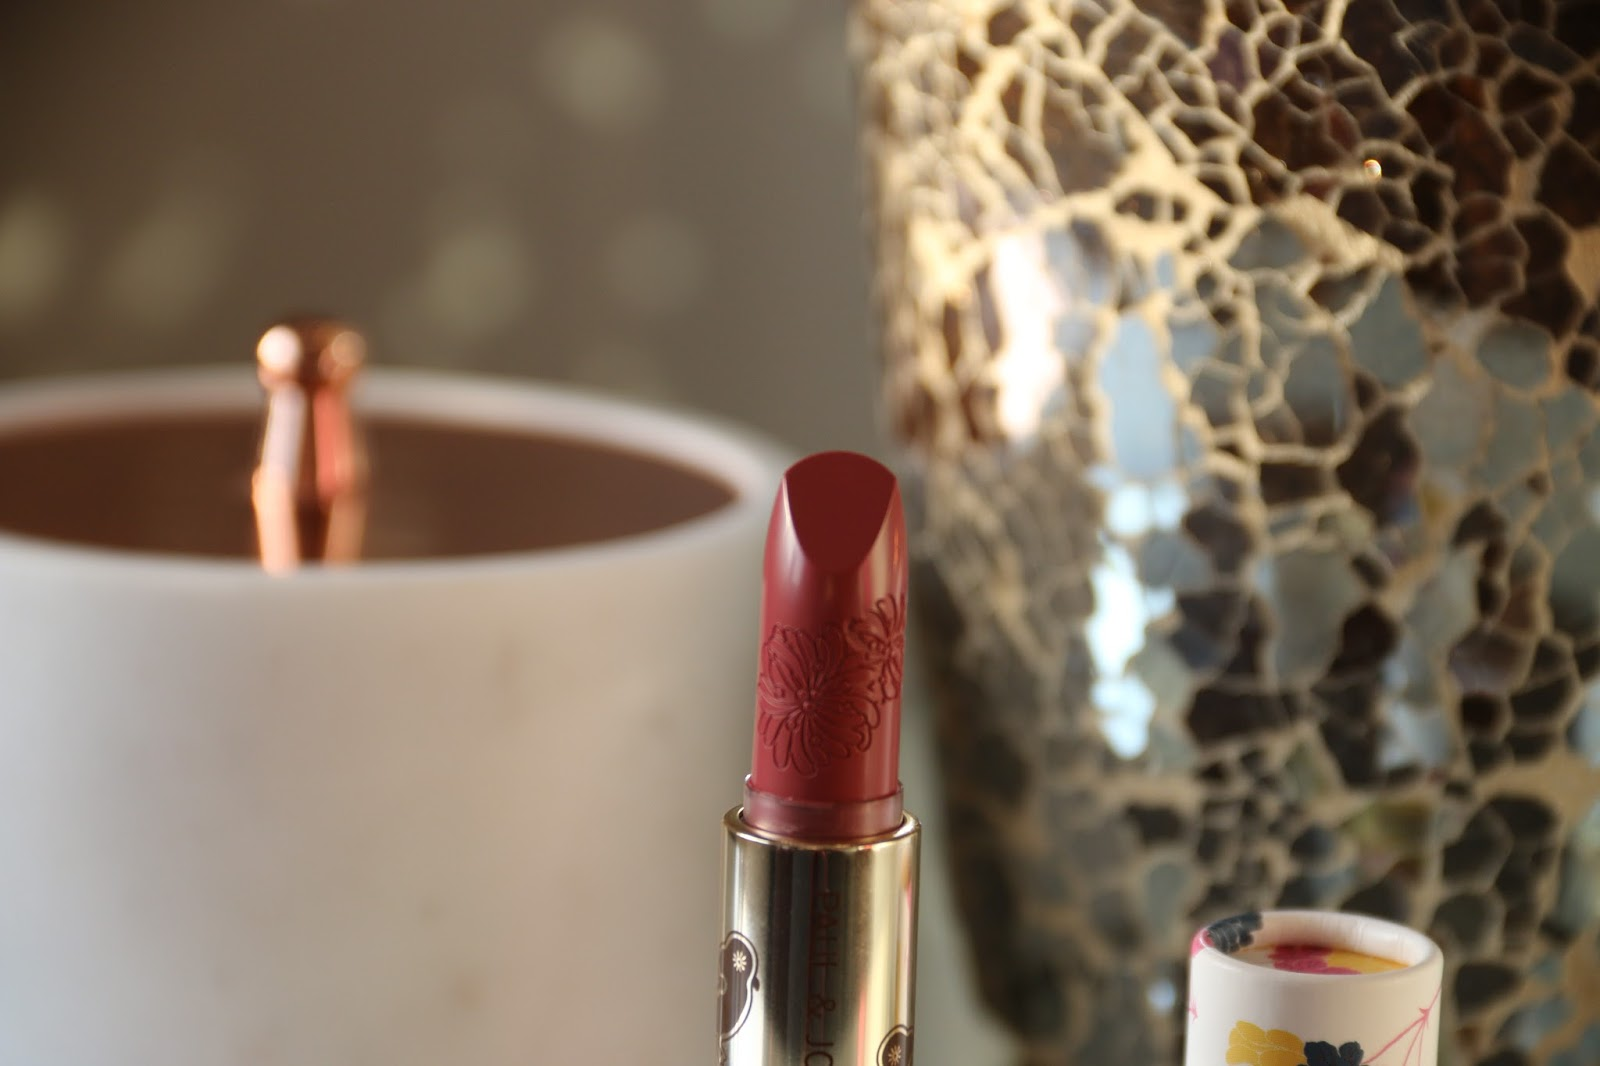 Paul and Joe Limited Edition Lipstick Refill in Autumn Sun 099 Image